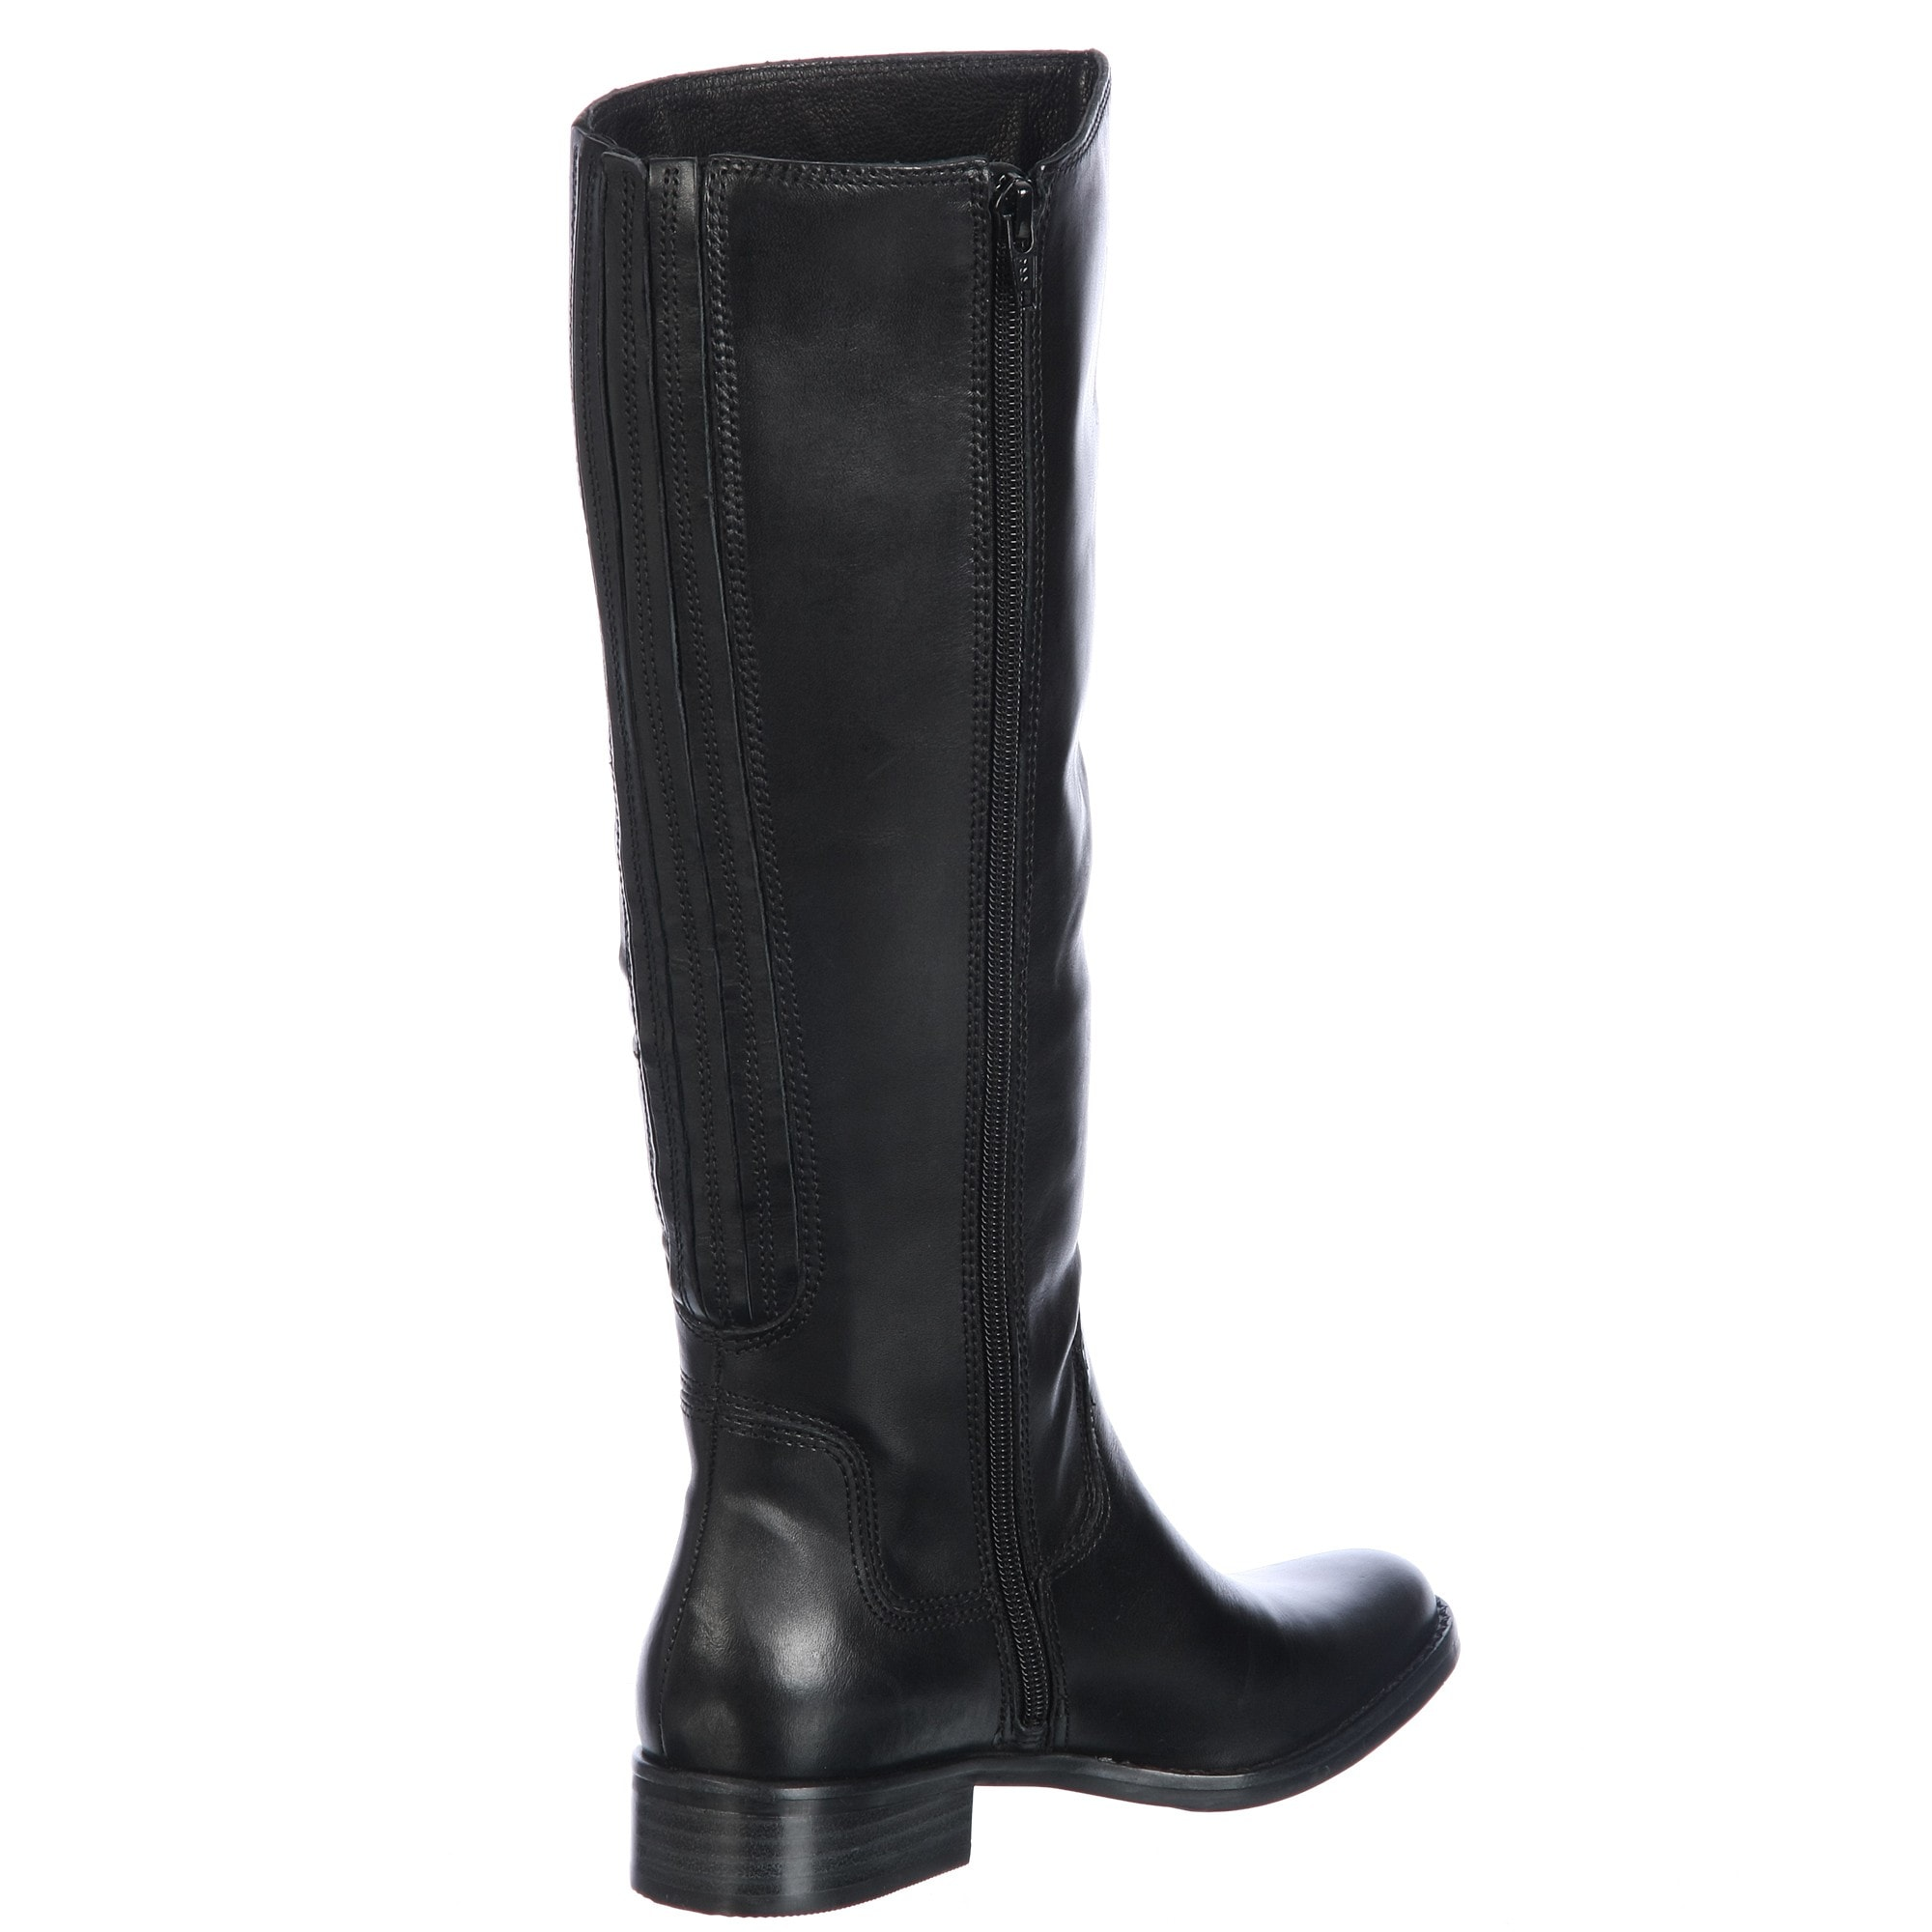 50db984f1a69 Shop Matisse Women s  Foxtrot  Leather Boots - Free Shipping Today -  Overstock - 6075653